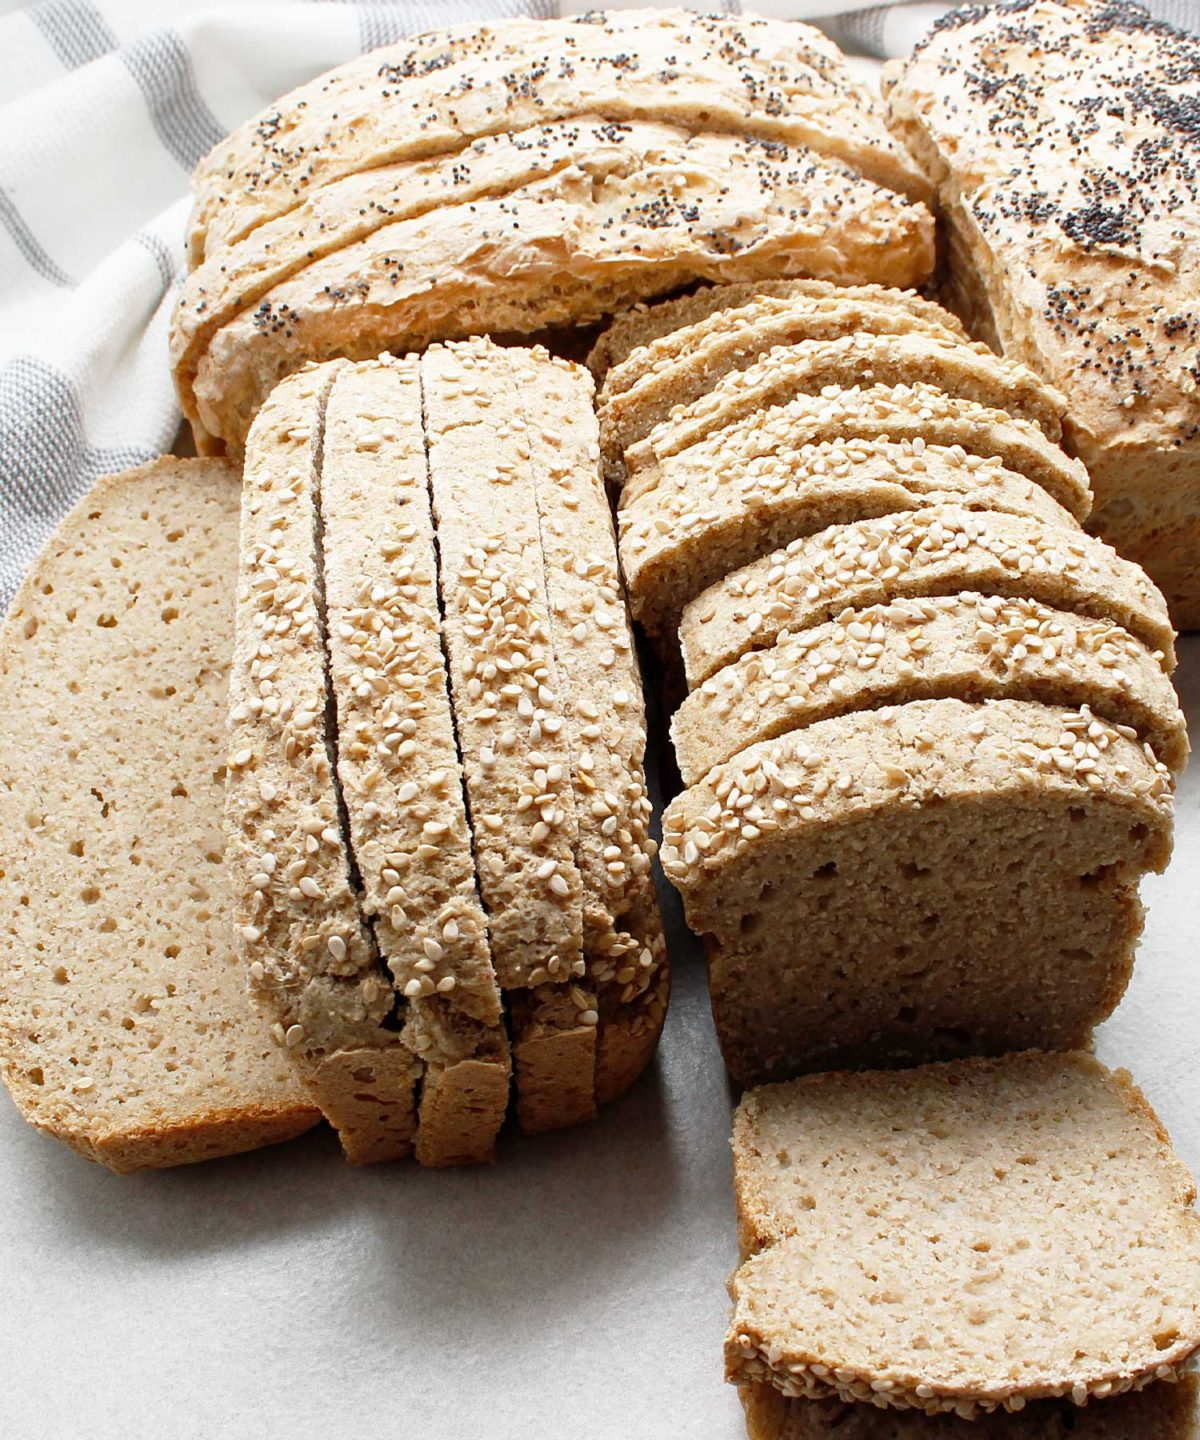 Sliced mini loaves of yeast-free, gluten-free and vegan bread.